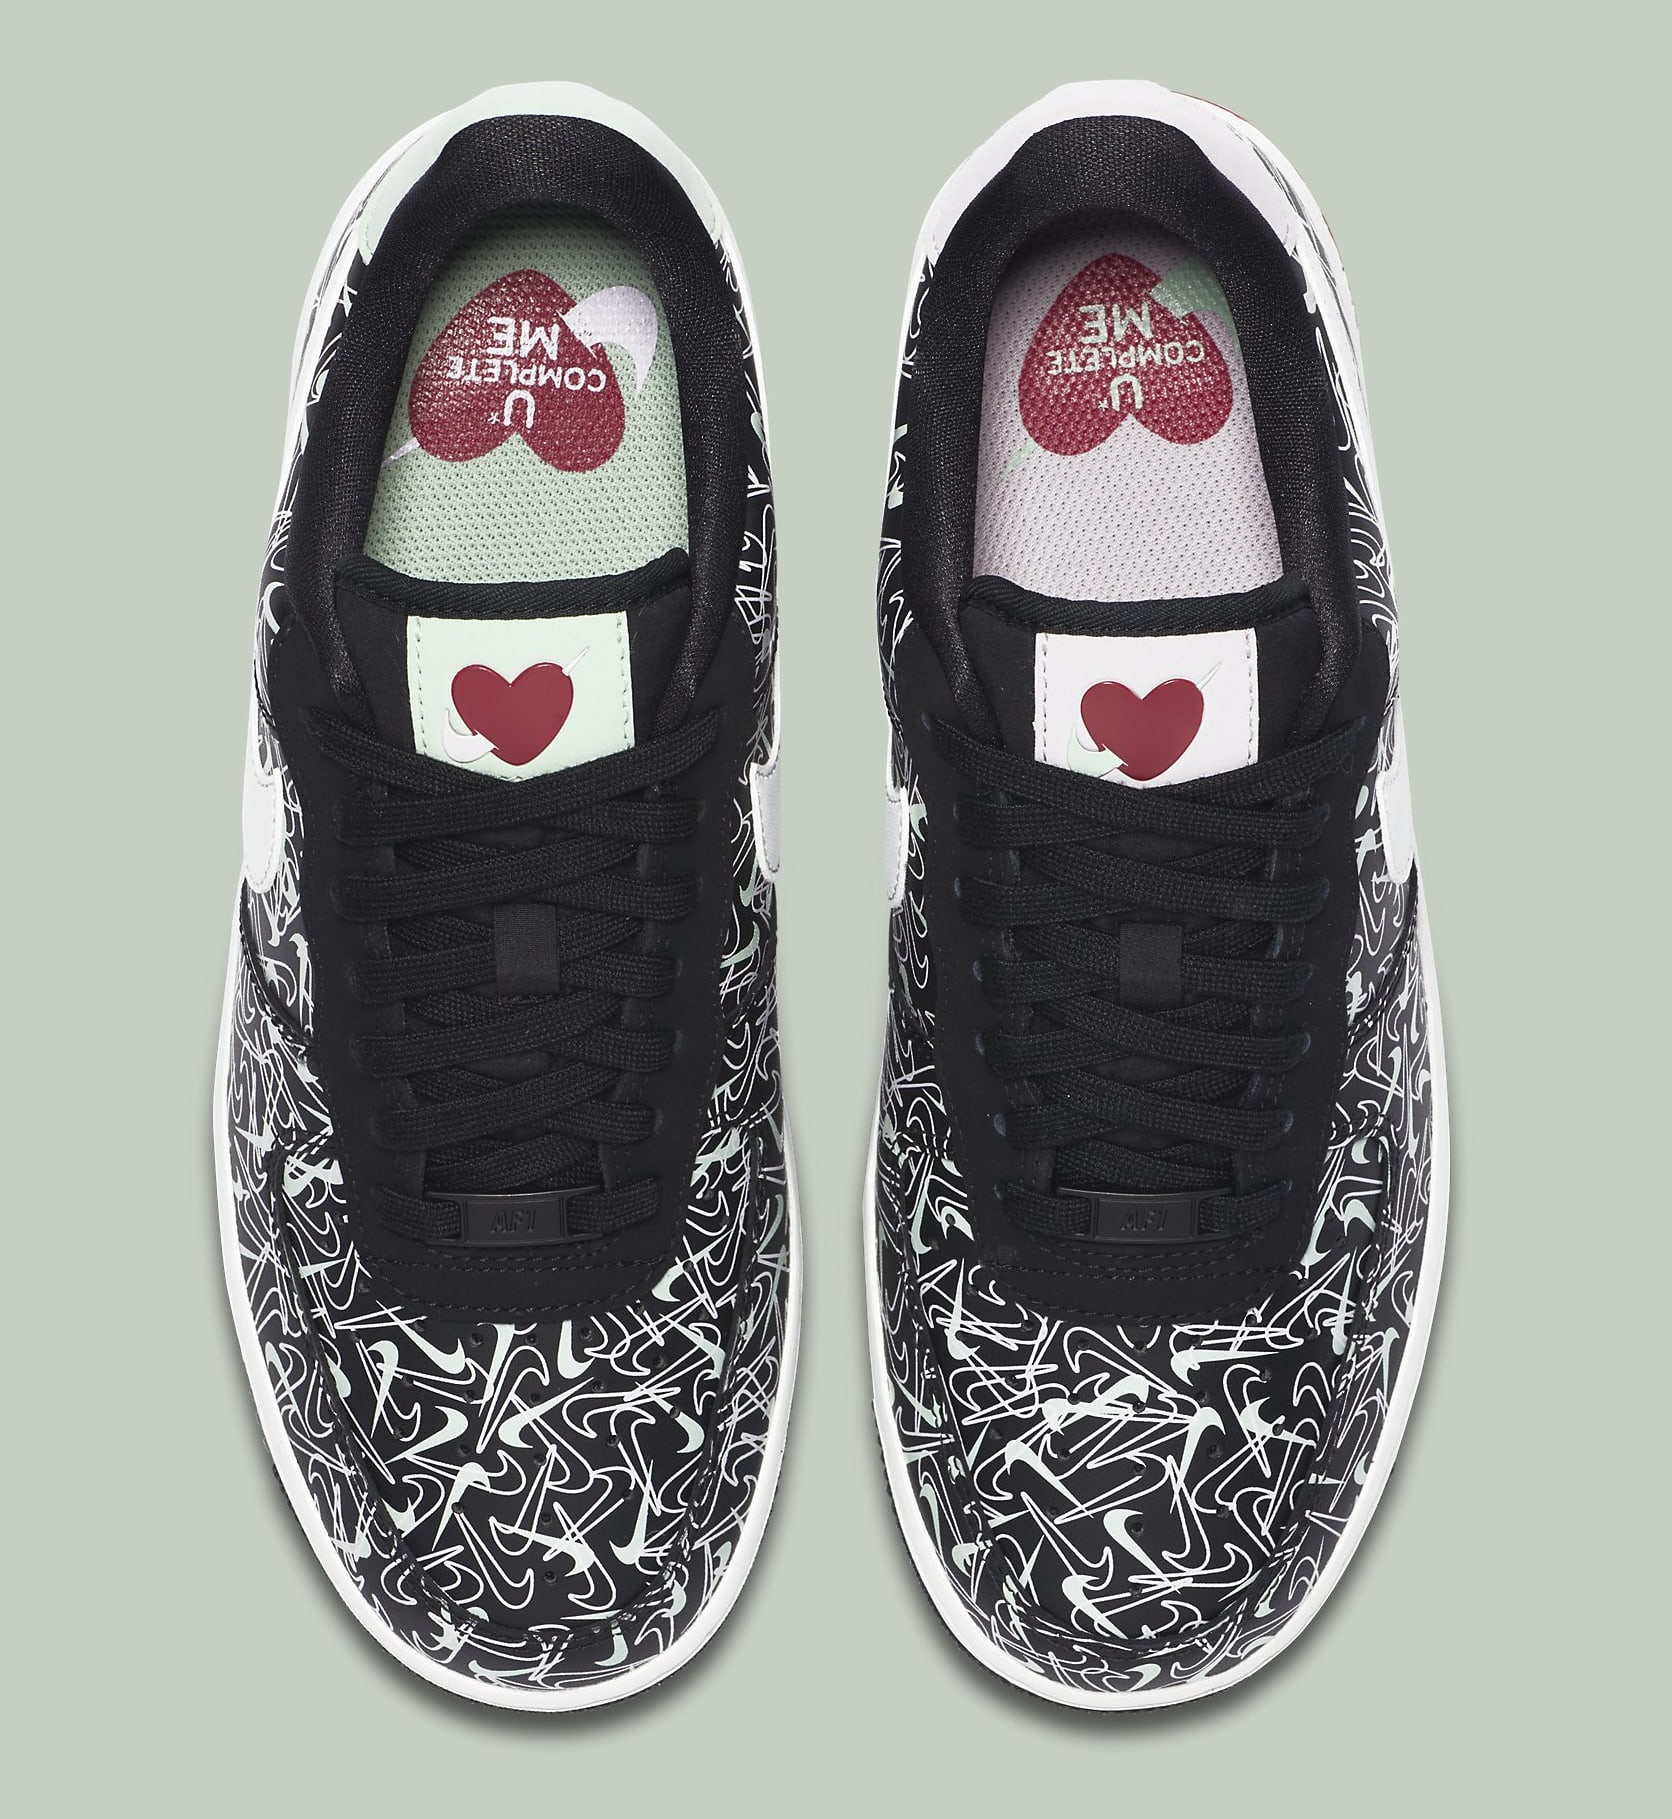 nike-air-force-1-low-valentines-day-2020-bv0319-002-top